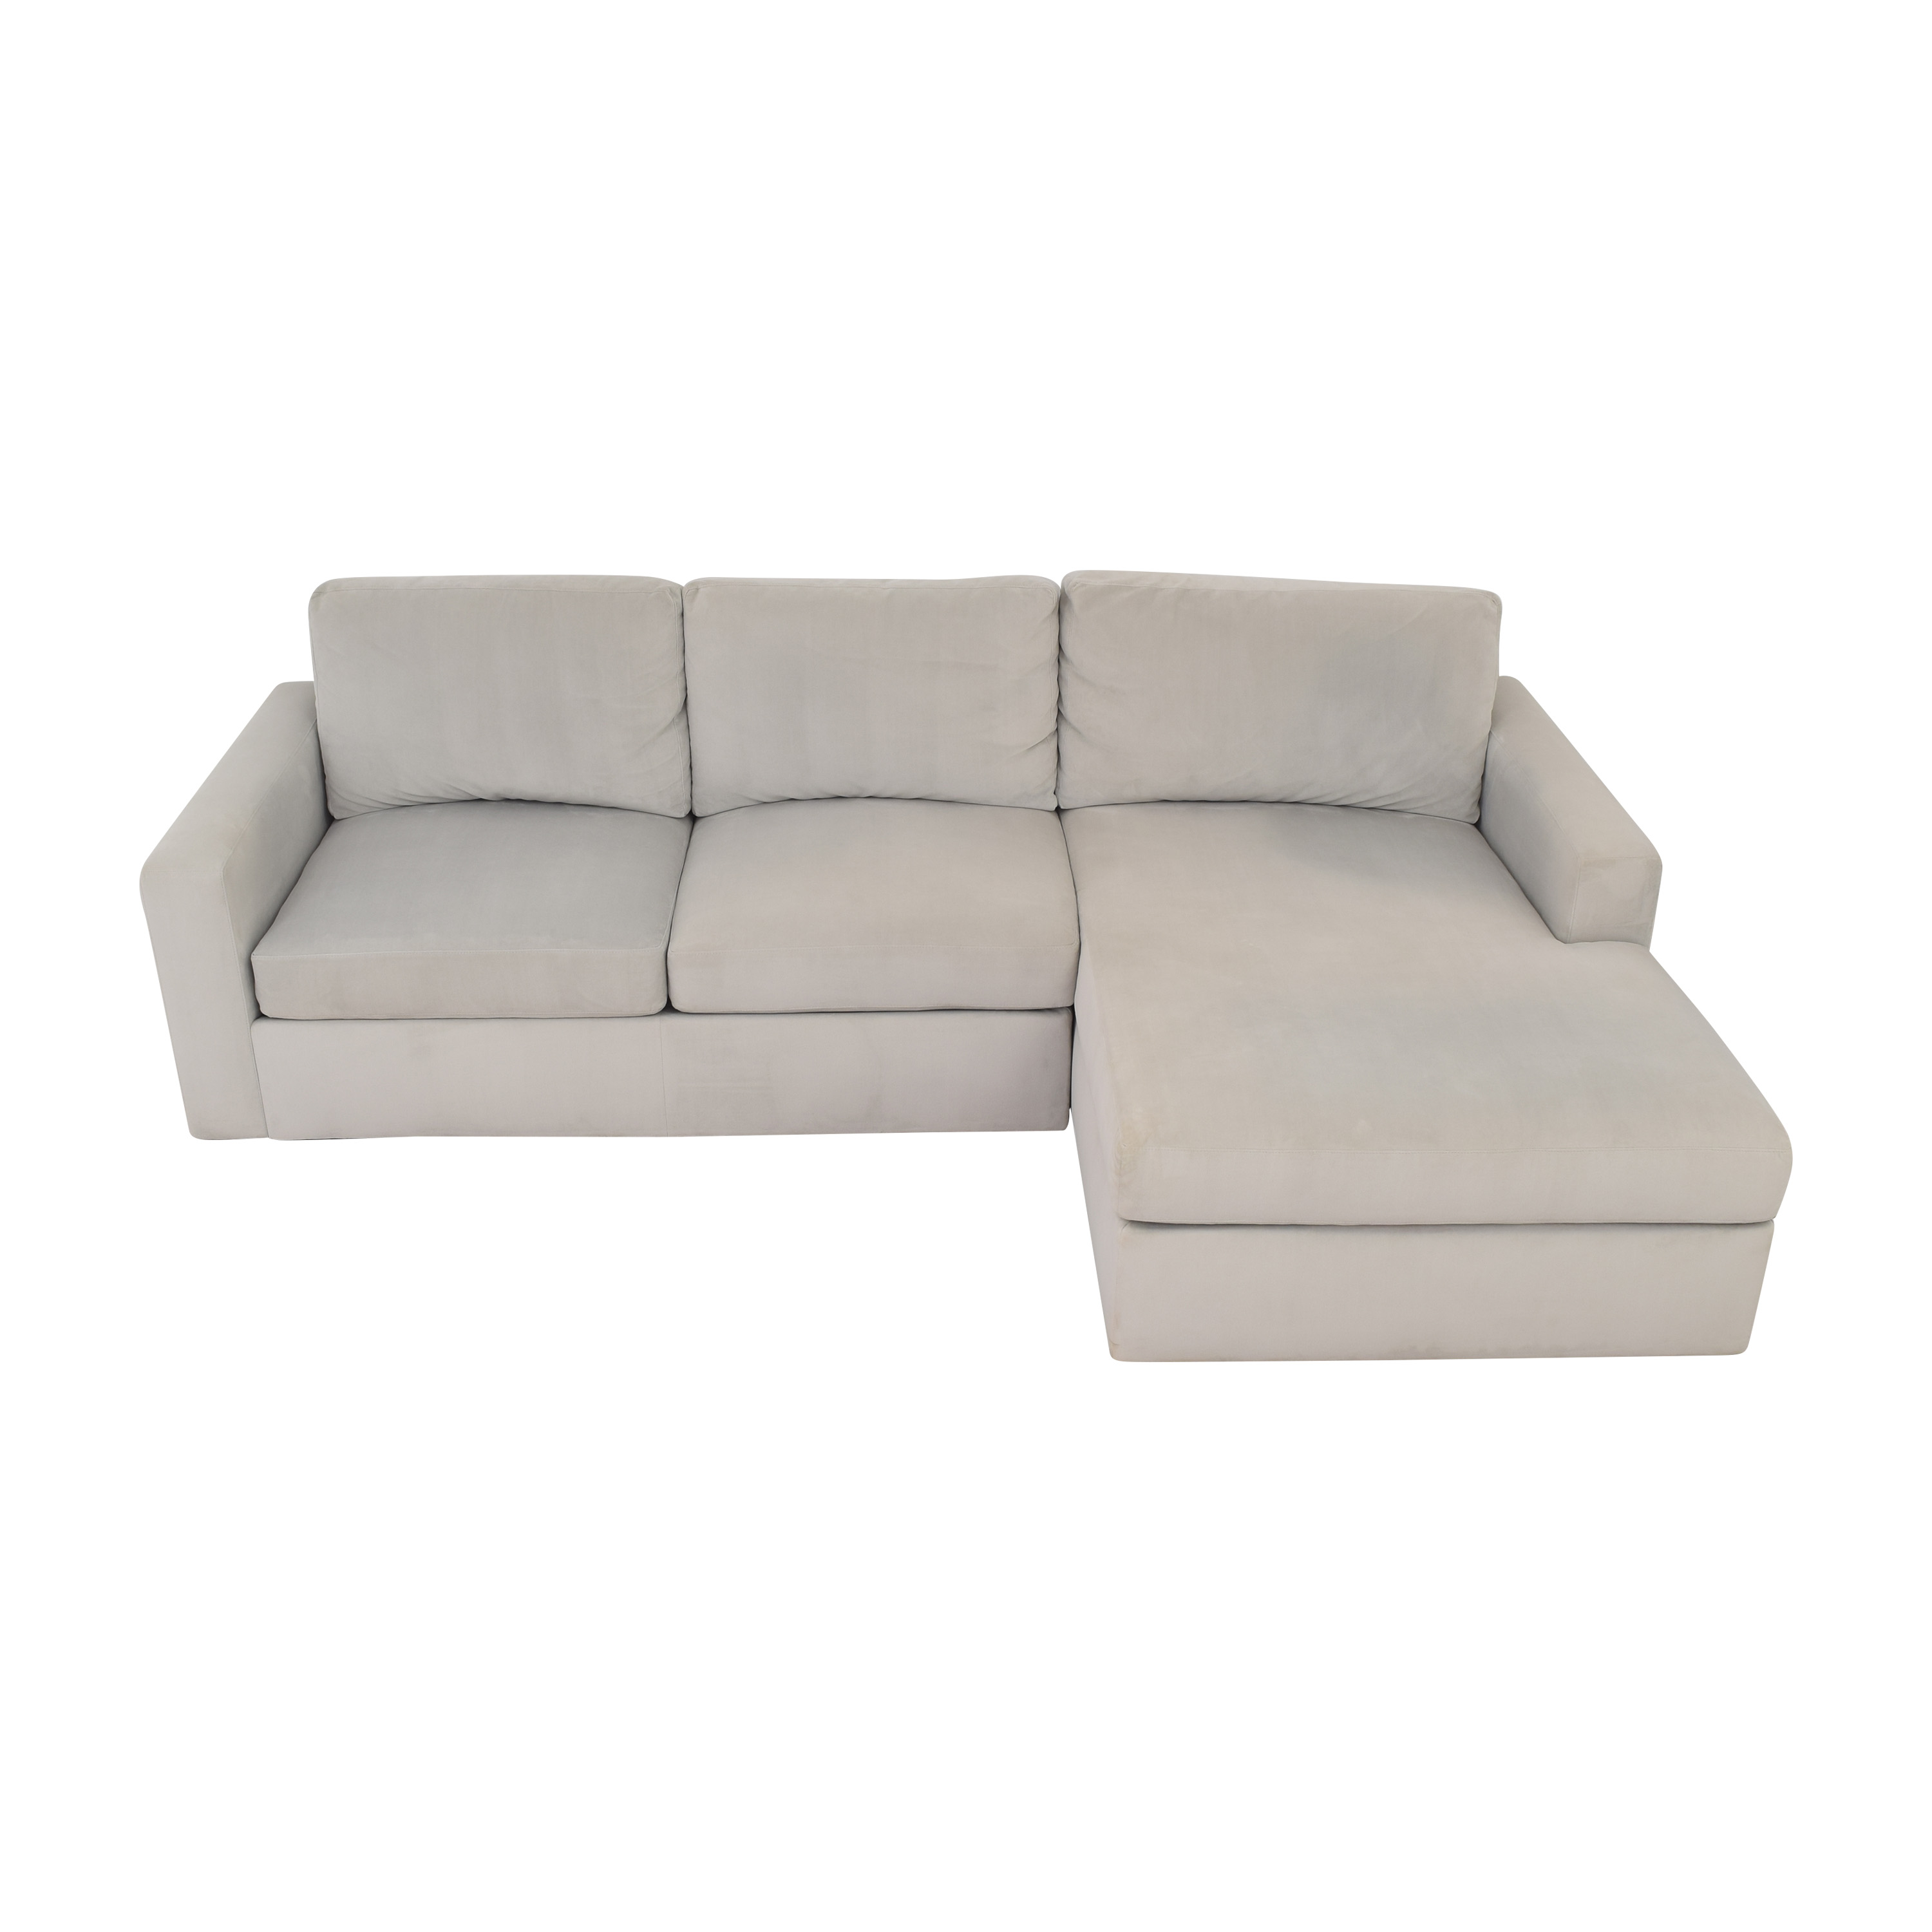 Room & Board Room & Board Modern Sectional Sofa with Chaise second hand